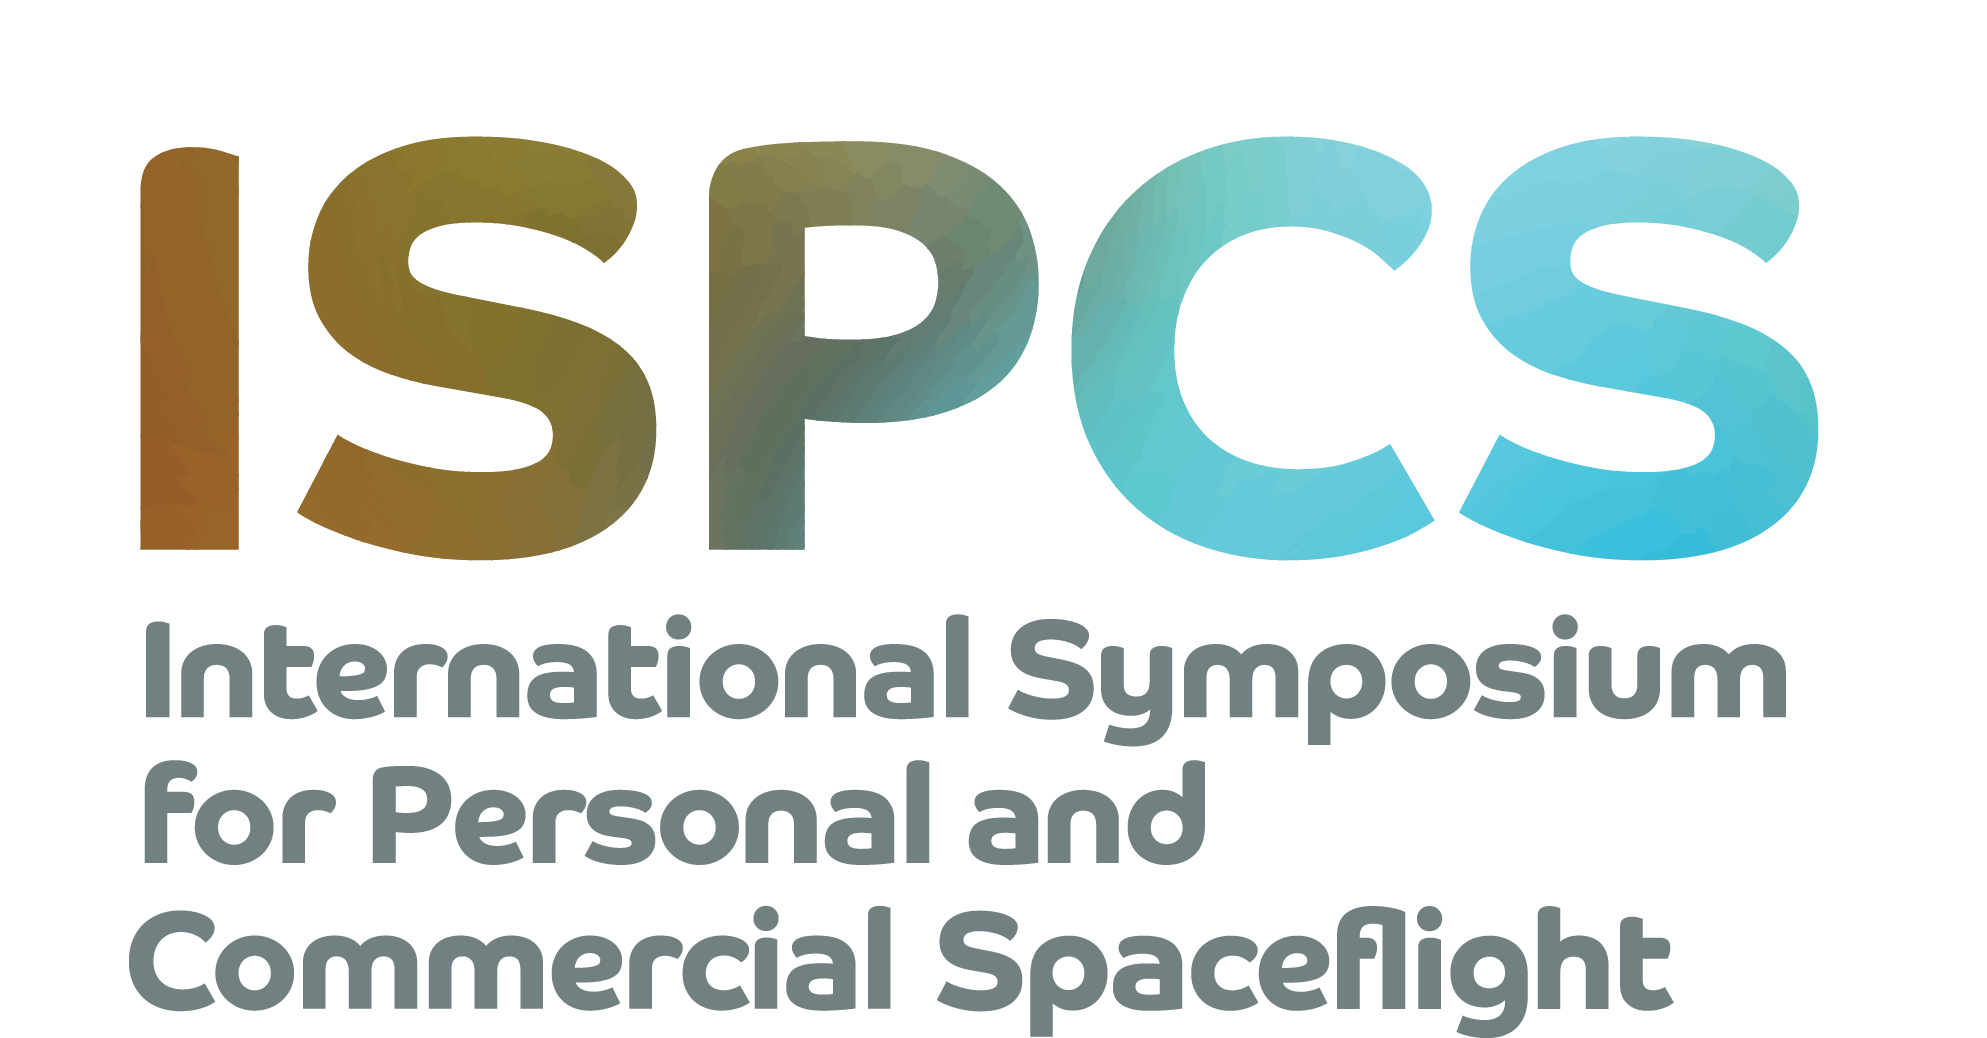 International Symposium for Personal and Commercial Spaceflight